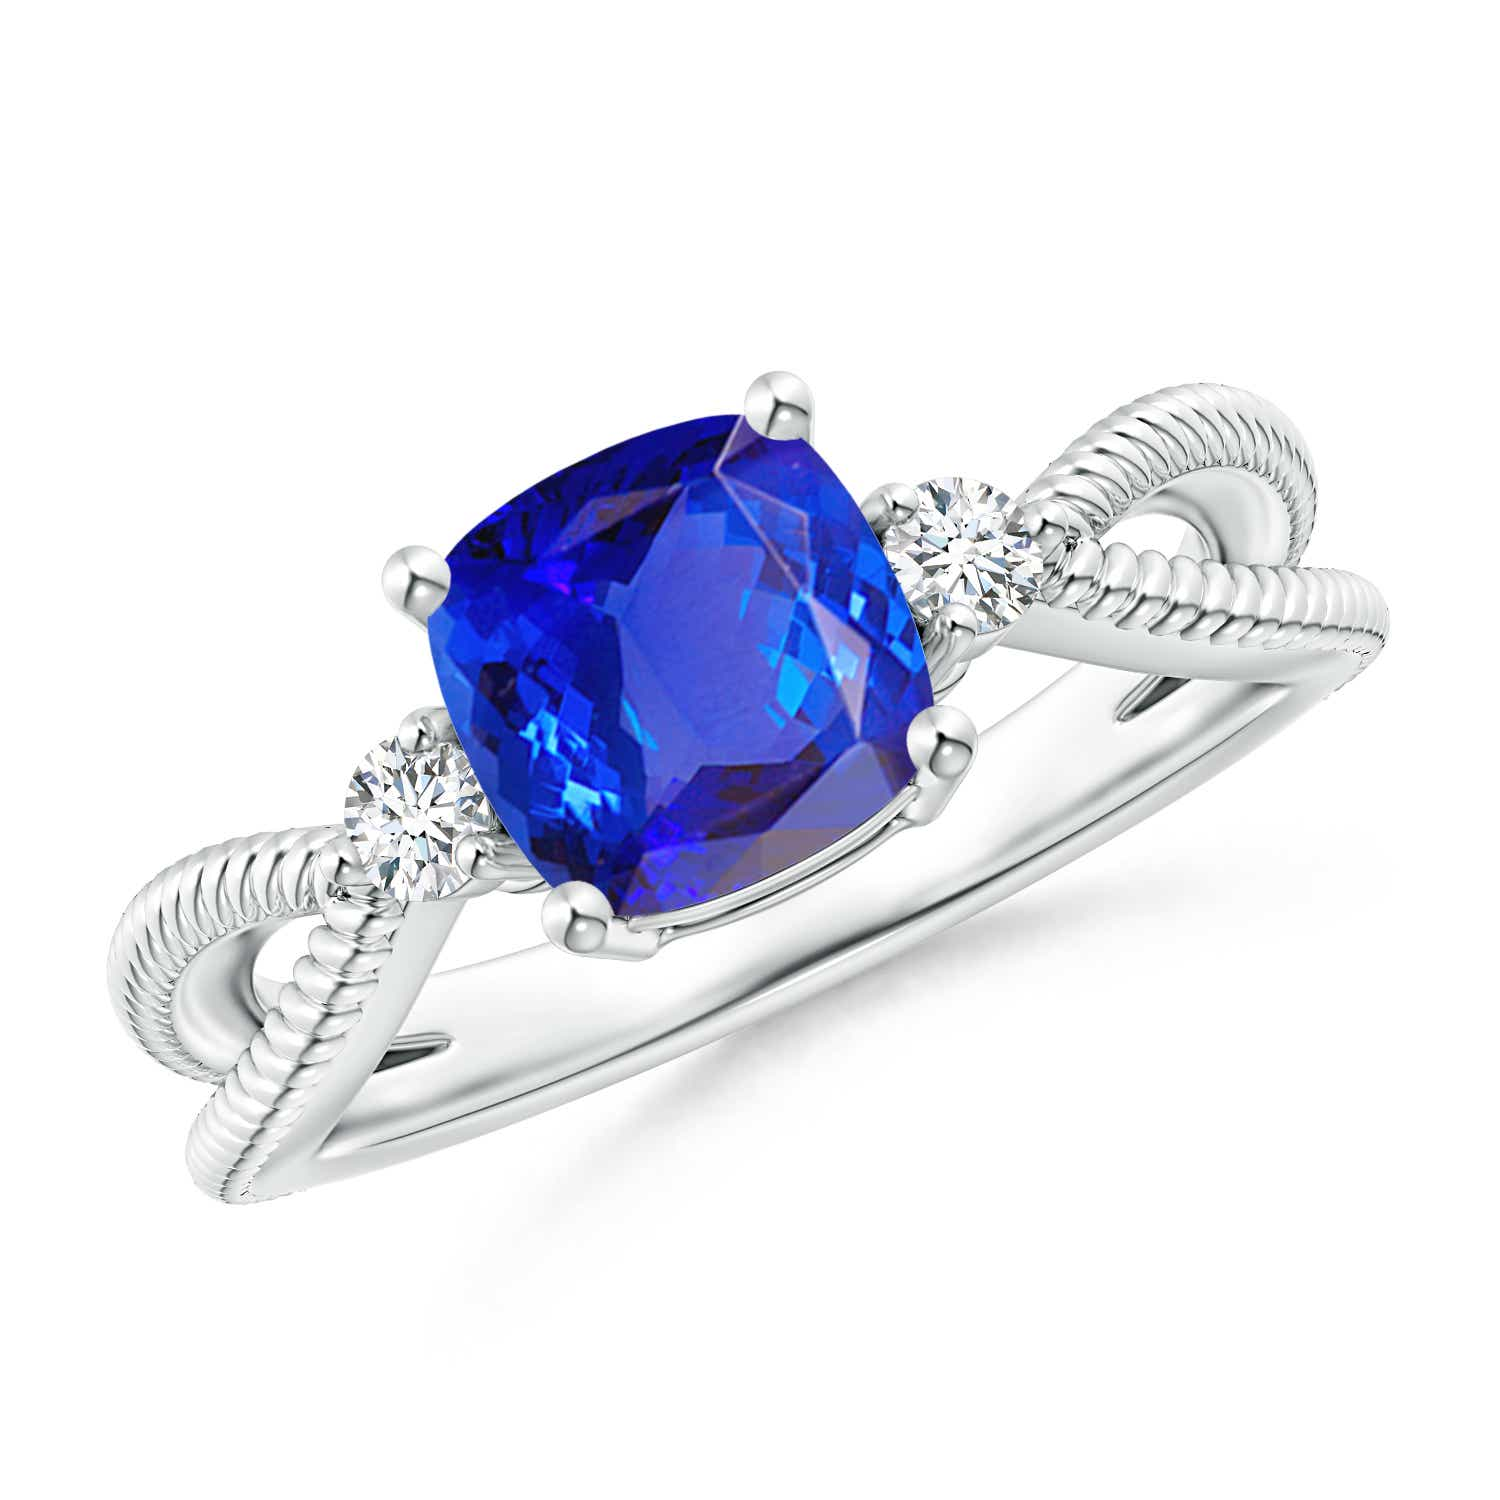 Angara Round Sapphire Halo Ring with Cushion Milgrain Detailing